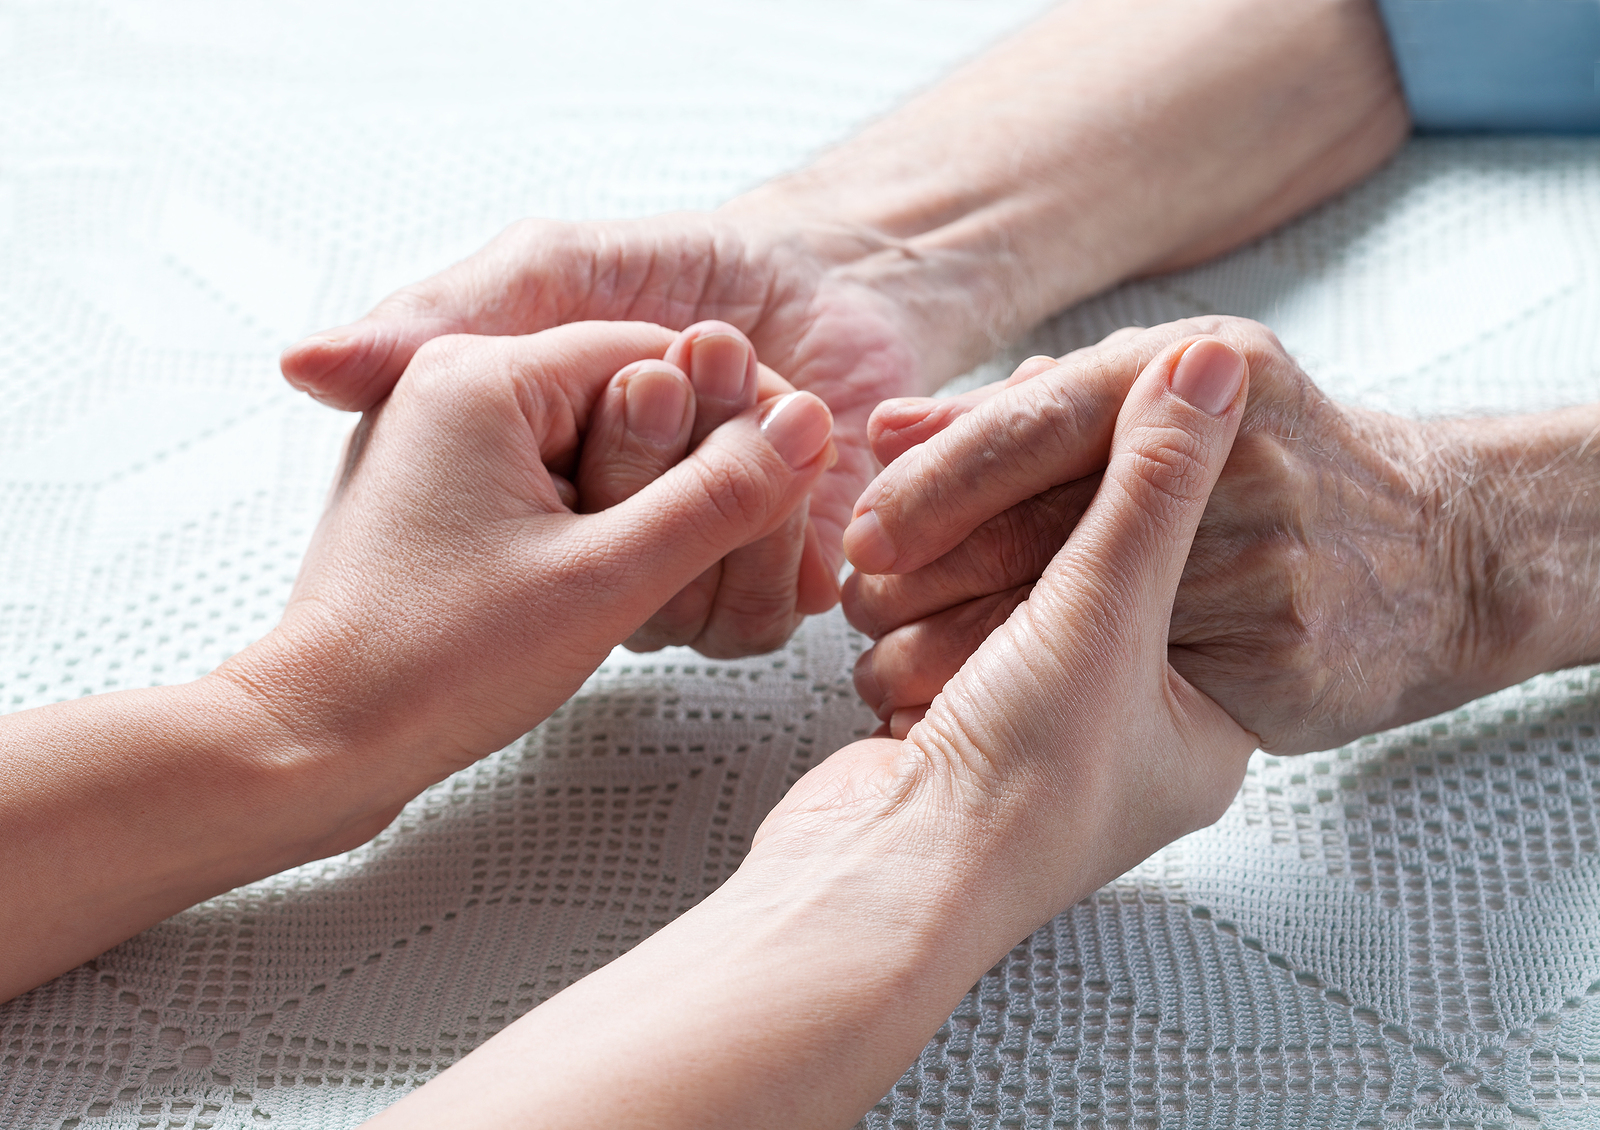 Questions To Ask When Looking At An Assisted Living